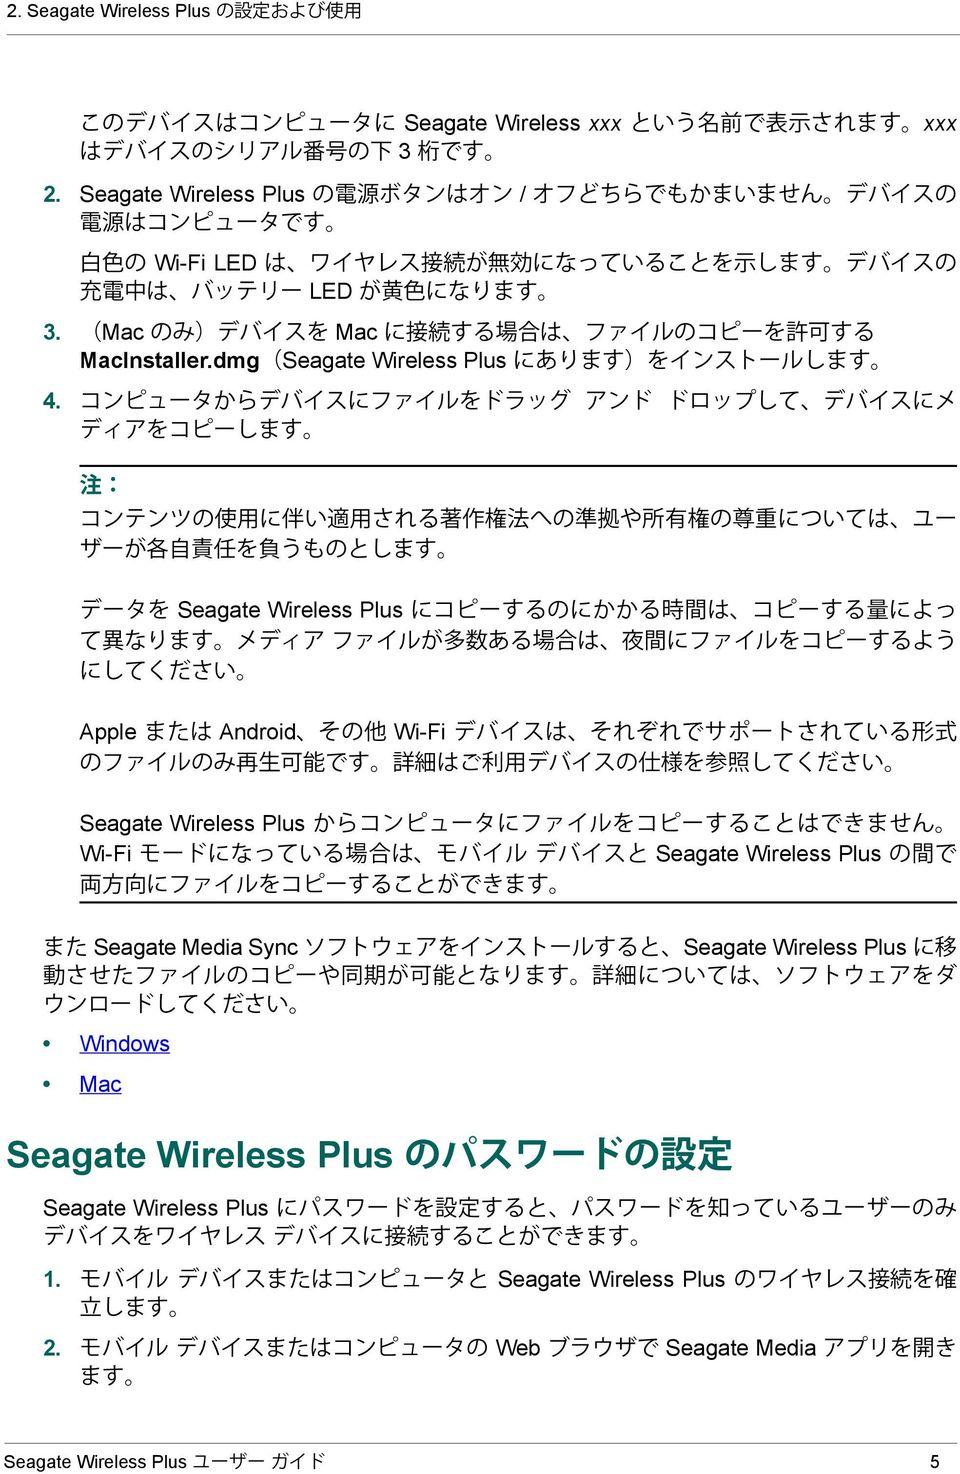 Seagate Wireless Plus Apple Android Wi-Fi Seagate Wireless Plus Wi-Fi Seagate Wireless Plus Seagate